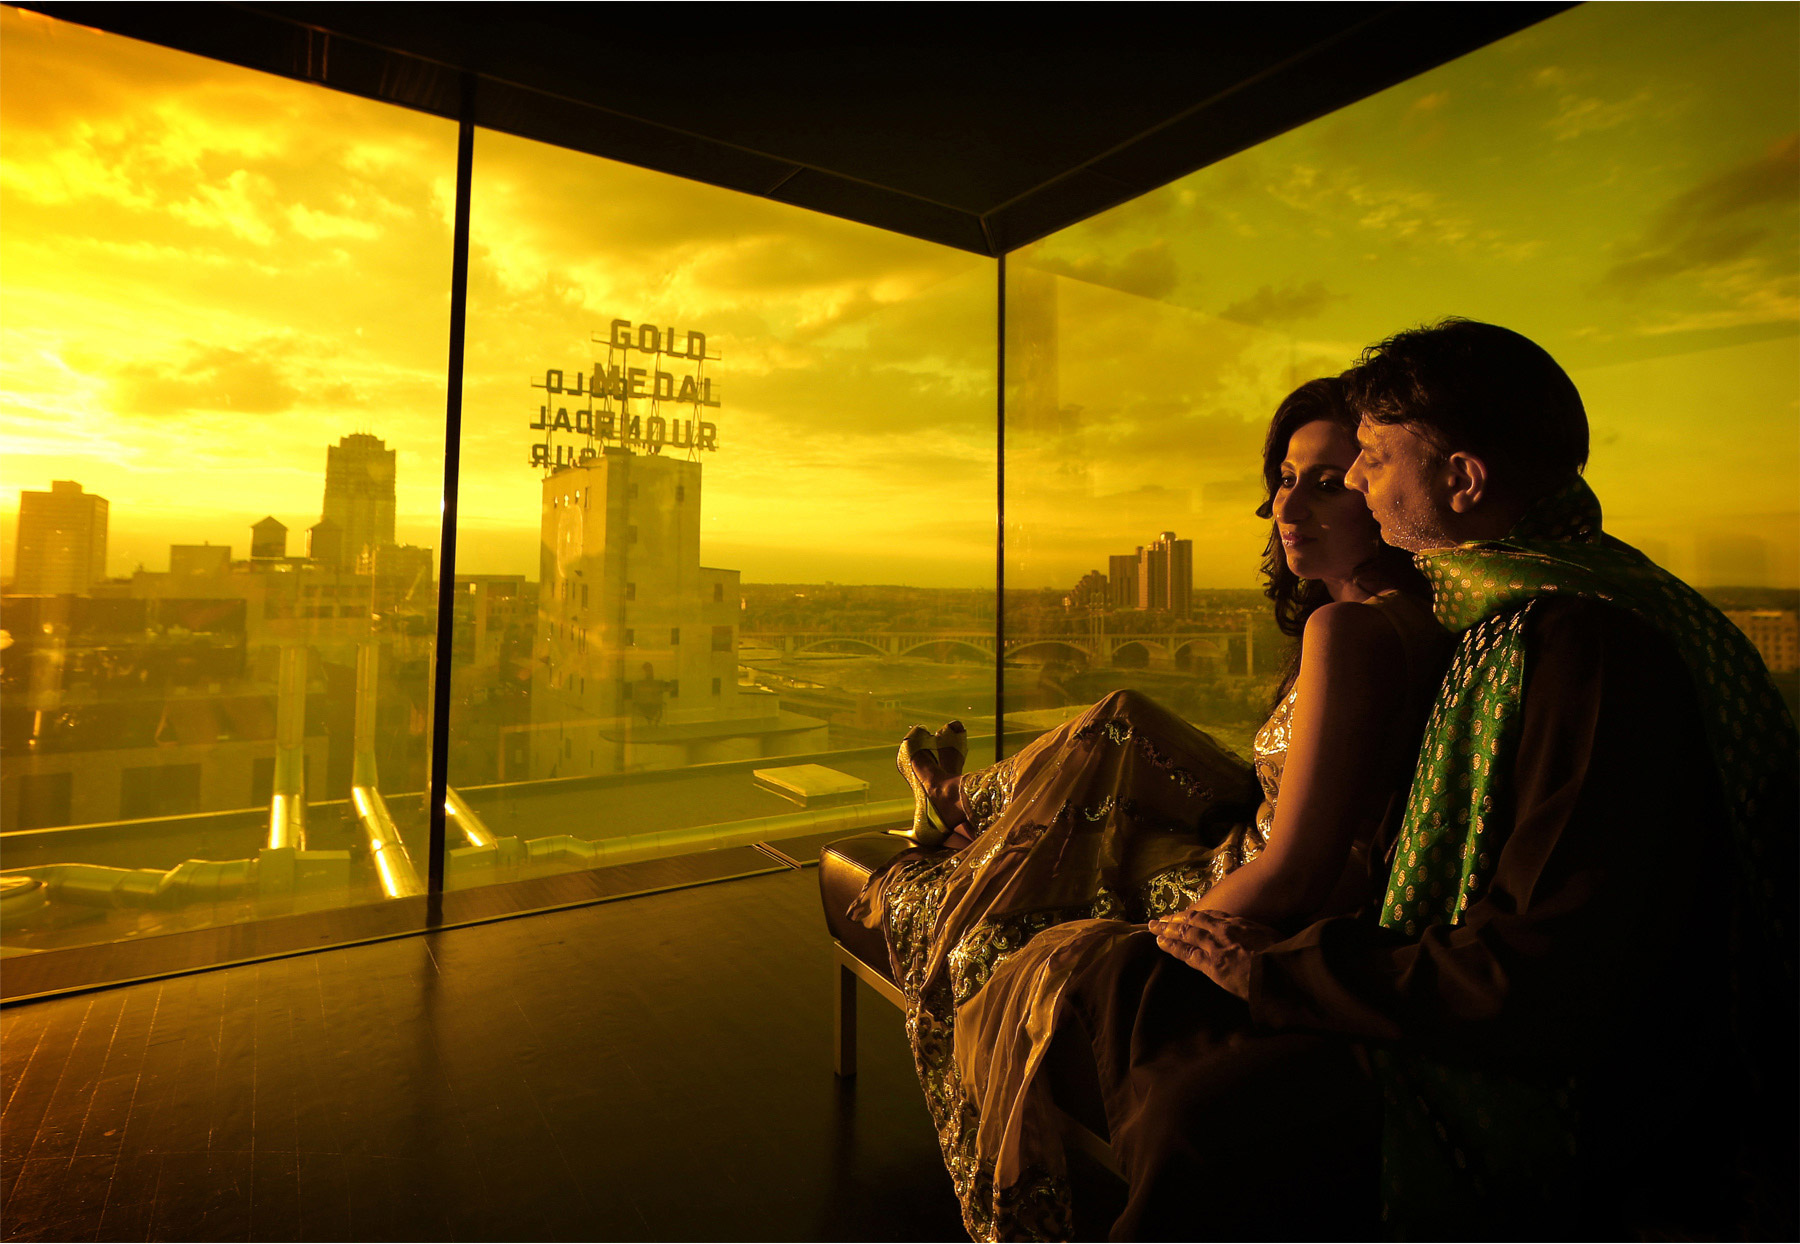 17-Minneapolis-Minnesota-Wedding-Photographer-by-Andrew-Vick-Photography-Summber-Engagement-Bride-Groom-Guthrie-Theater-Yellow-Room-Level-Nine-Embrace-Tradional-Indian-Clothing-Downtown-Gold-Metal-Sign-Natasha-and-Sohail.jpg